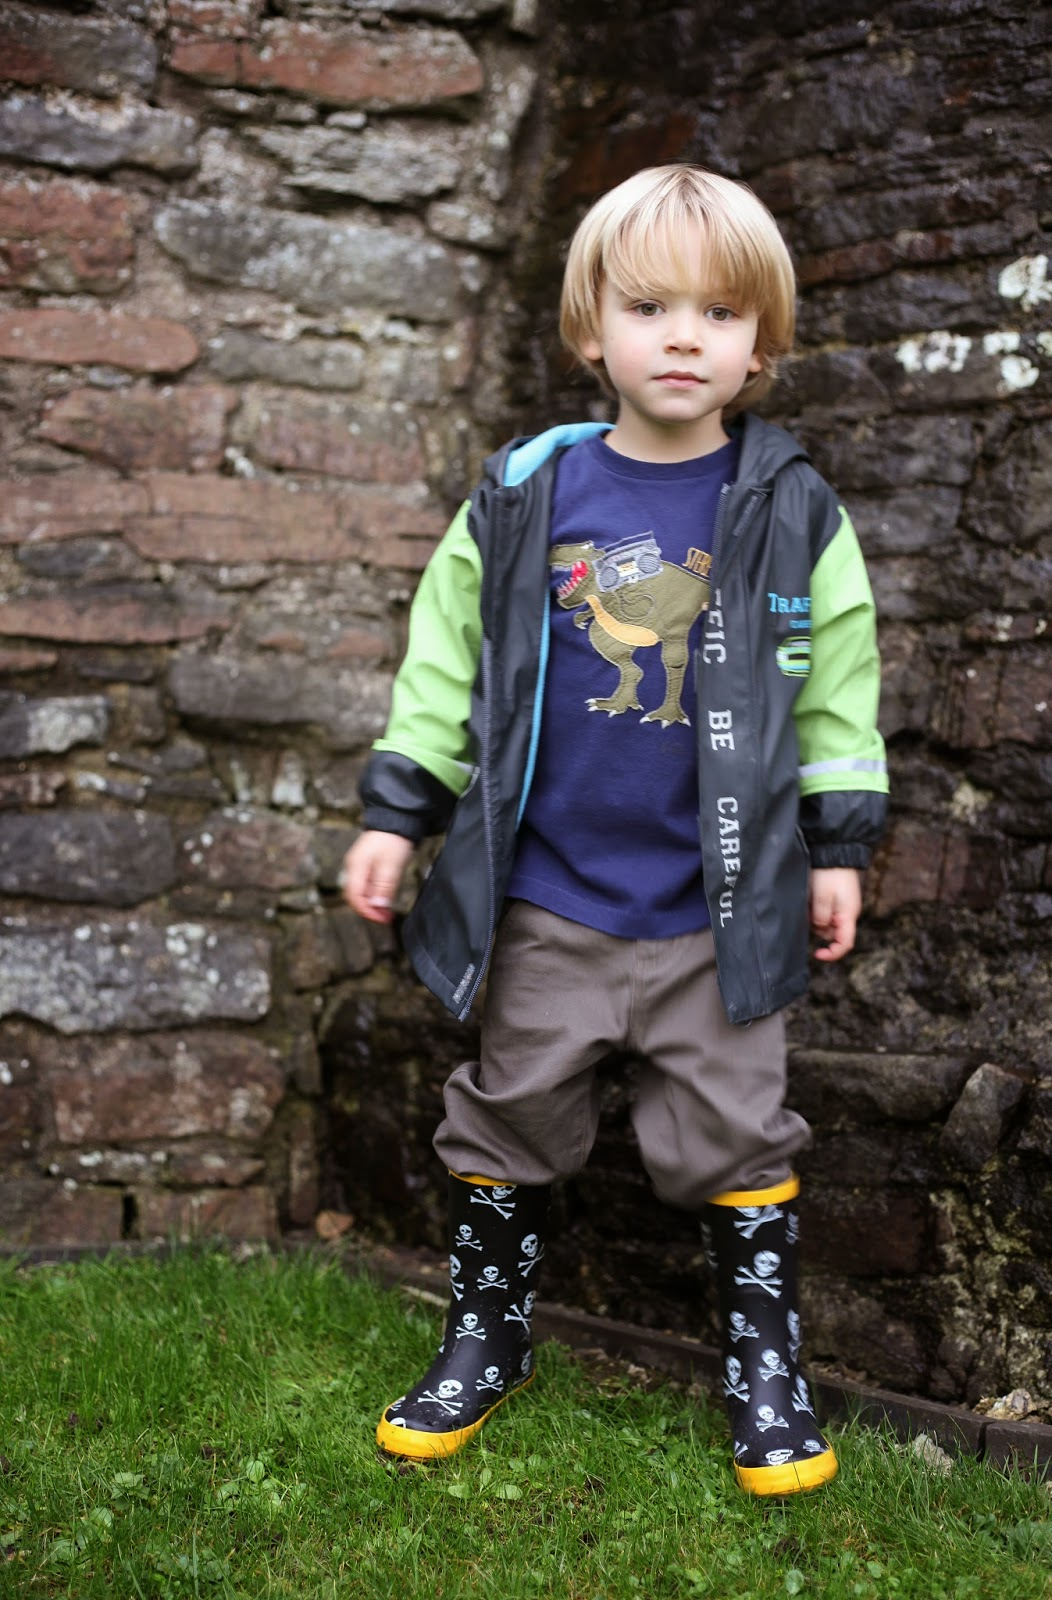 Clarks Pirate wellies